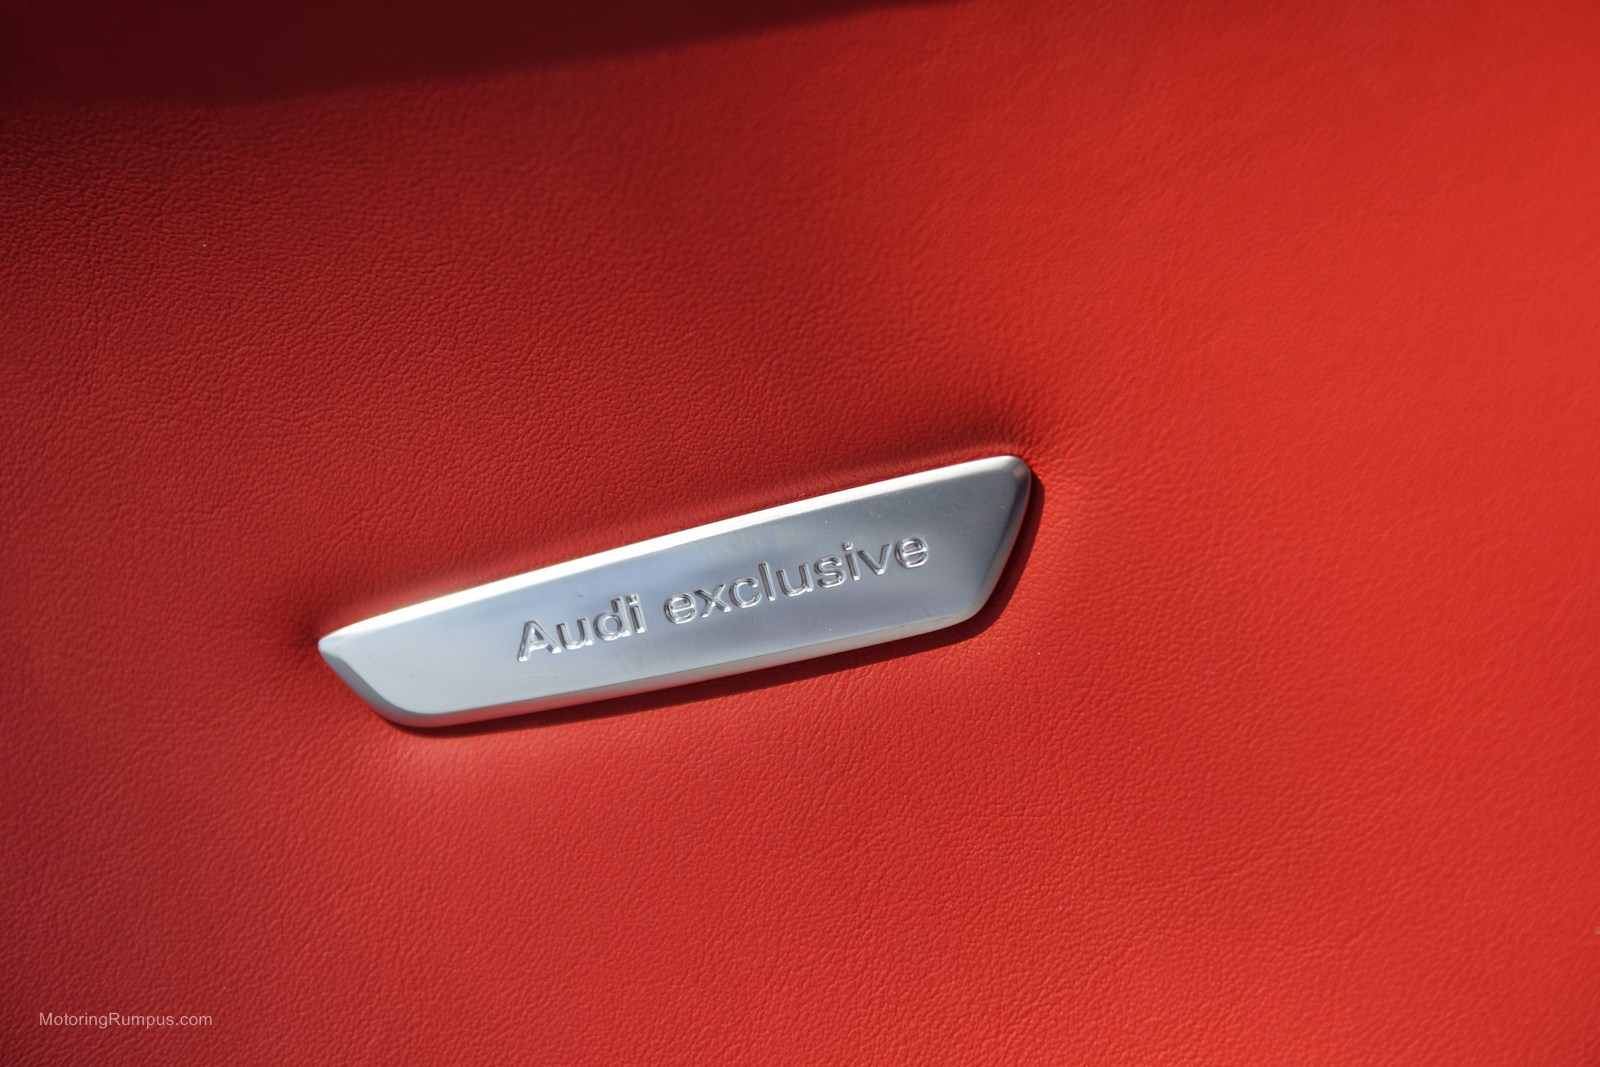 2013 Audi Tt Rs Audi Exclusive Interior Badge Motoring